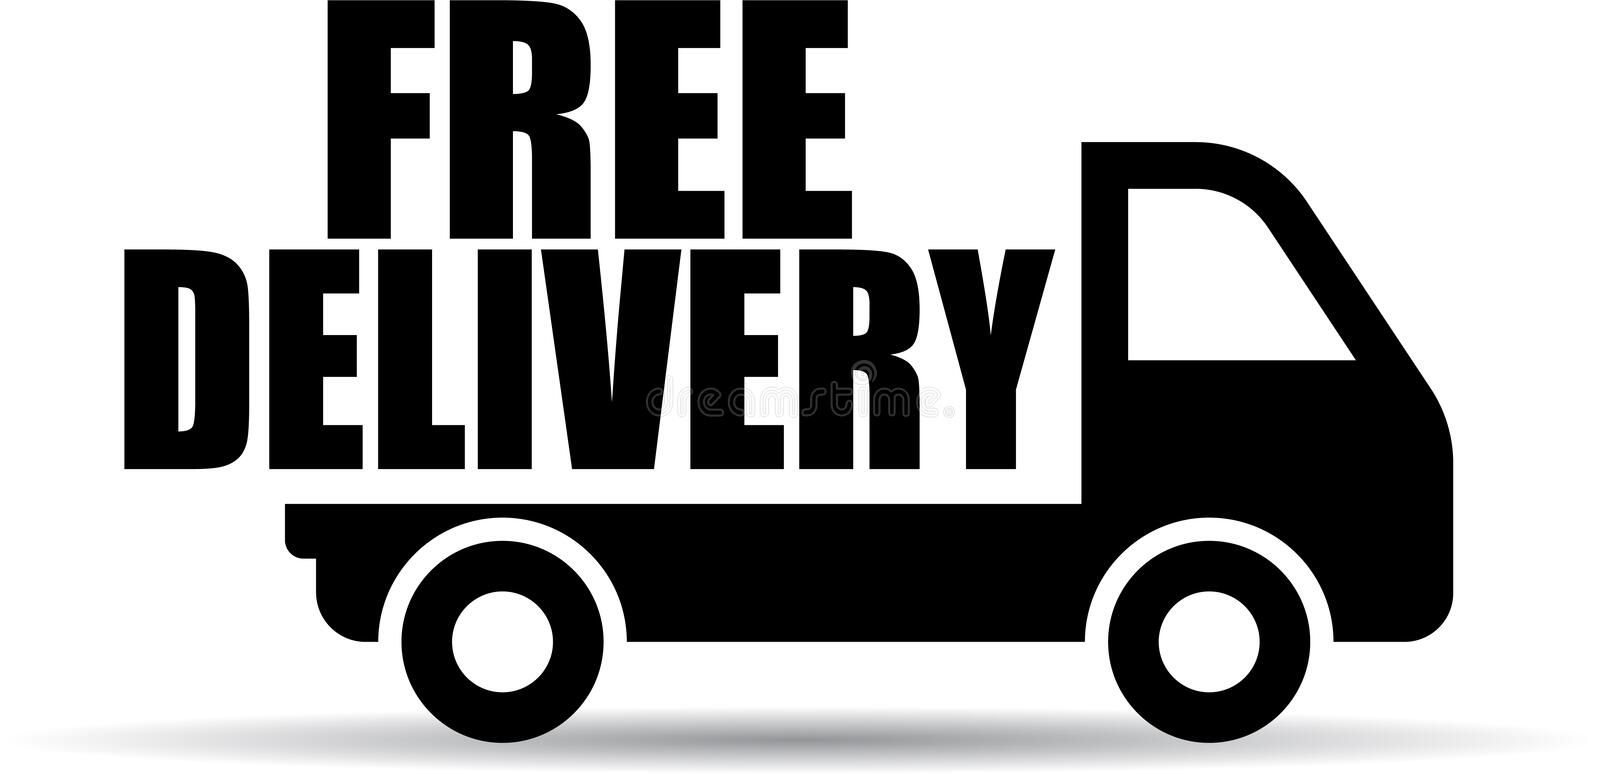 Free delivery truck icon stock illustration